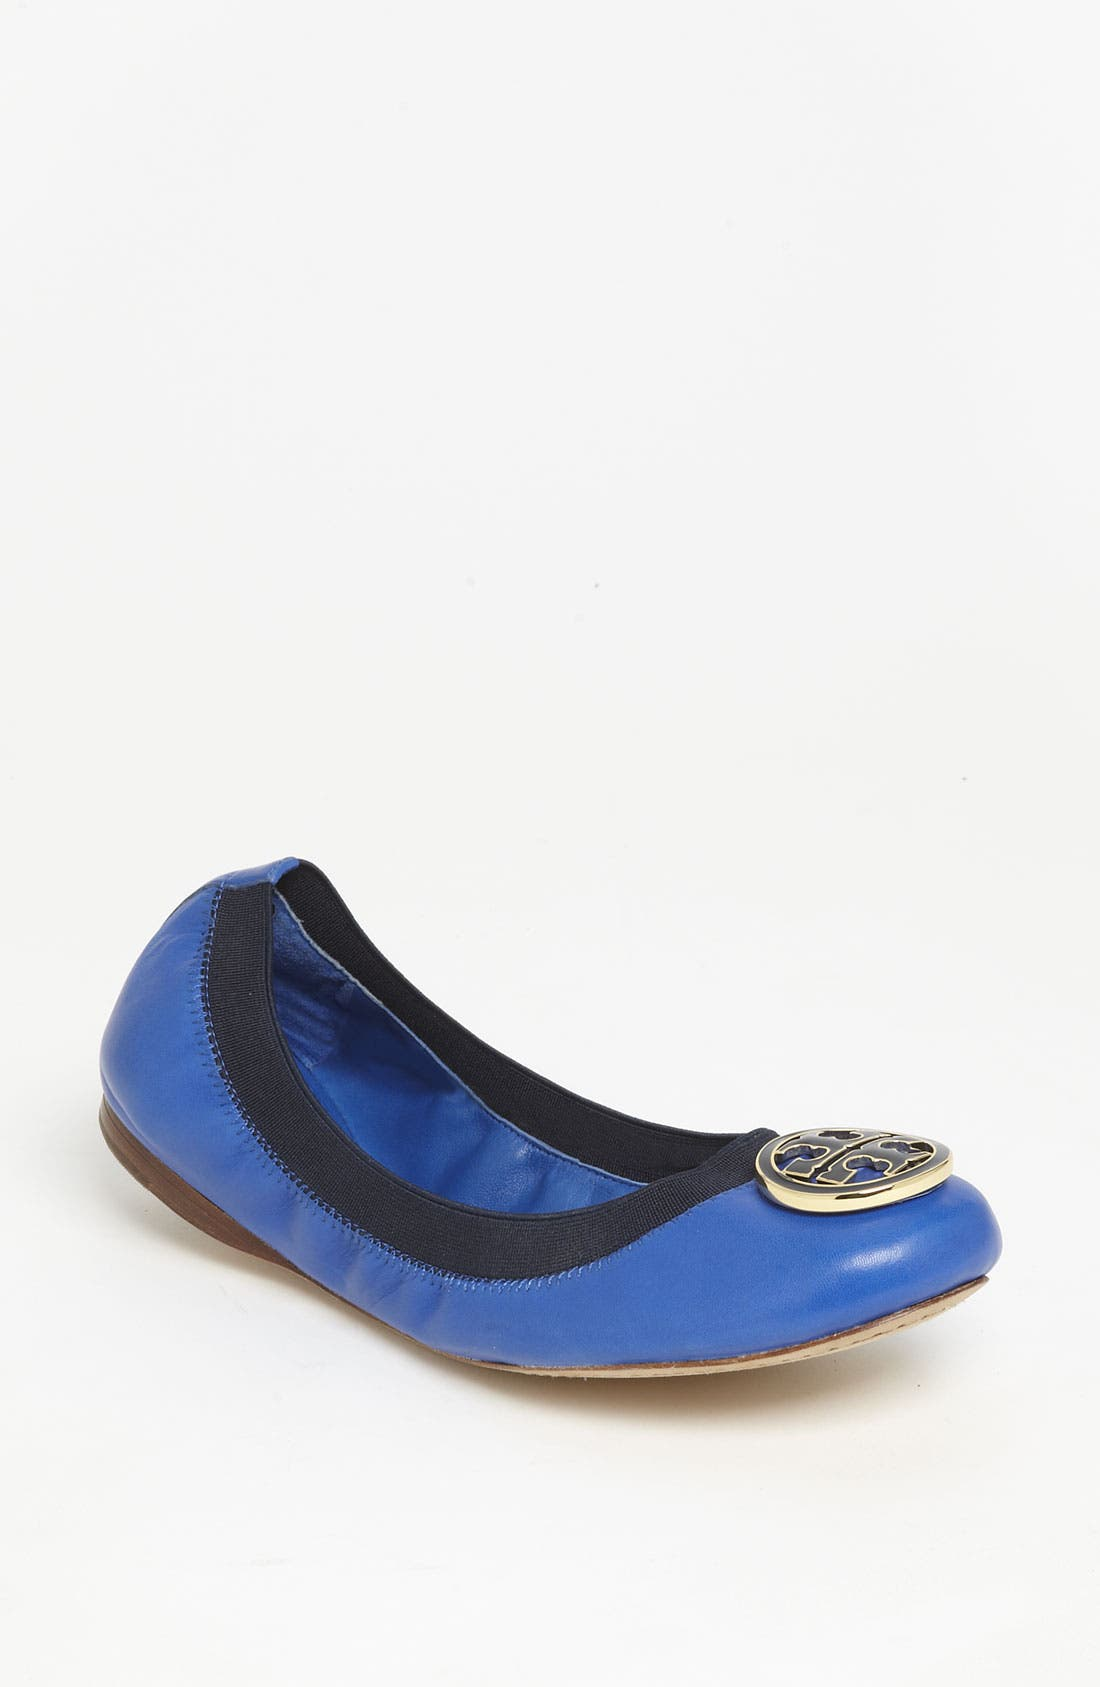 Alternate Image 1 Selected - Tory Burch 'Caroline' Flat